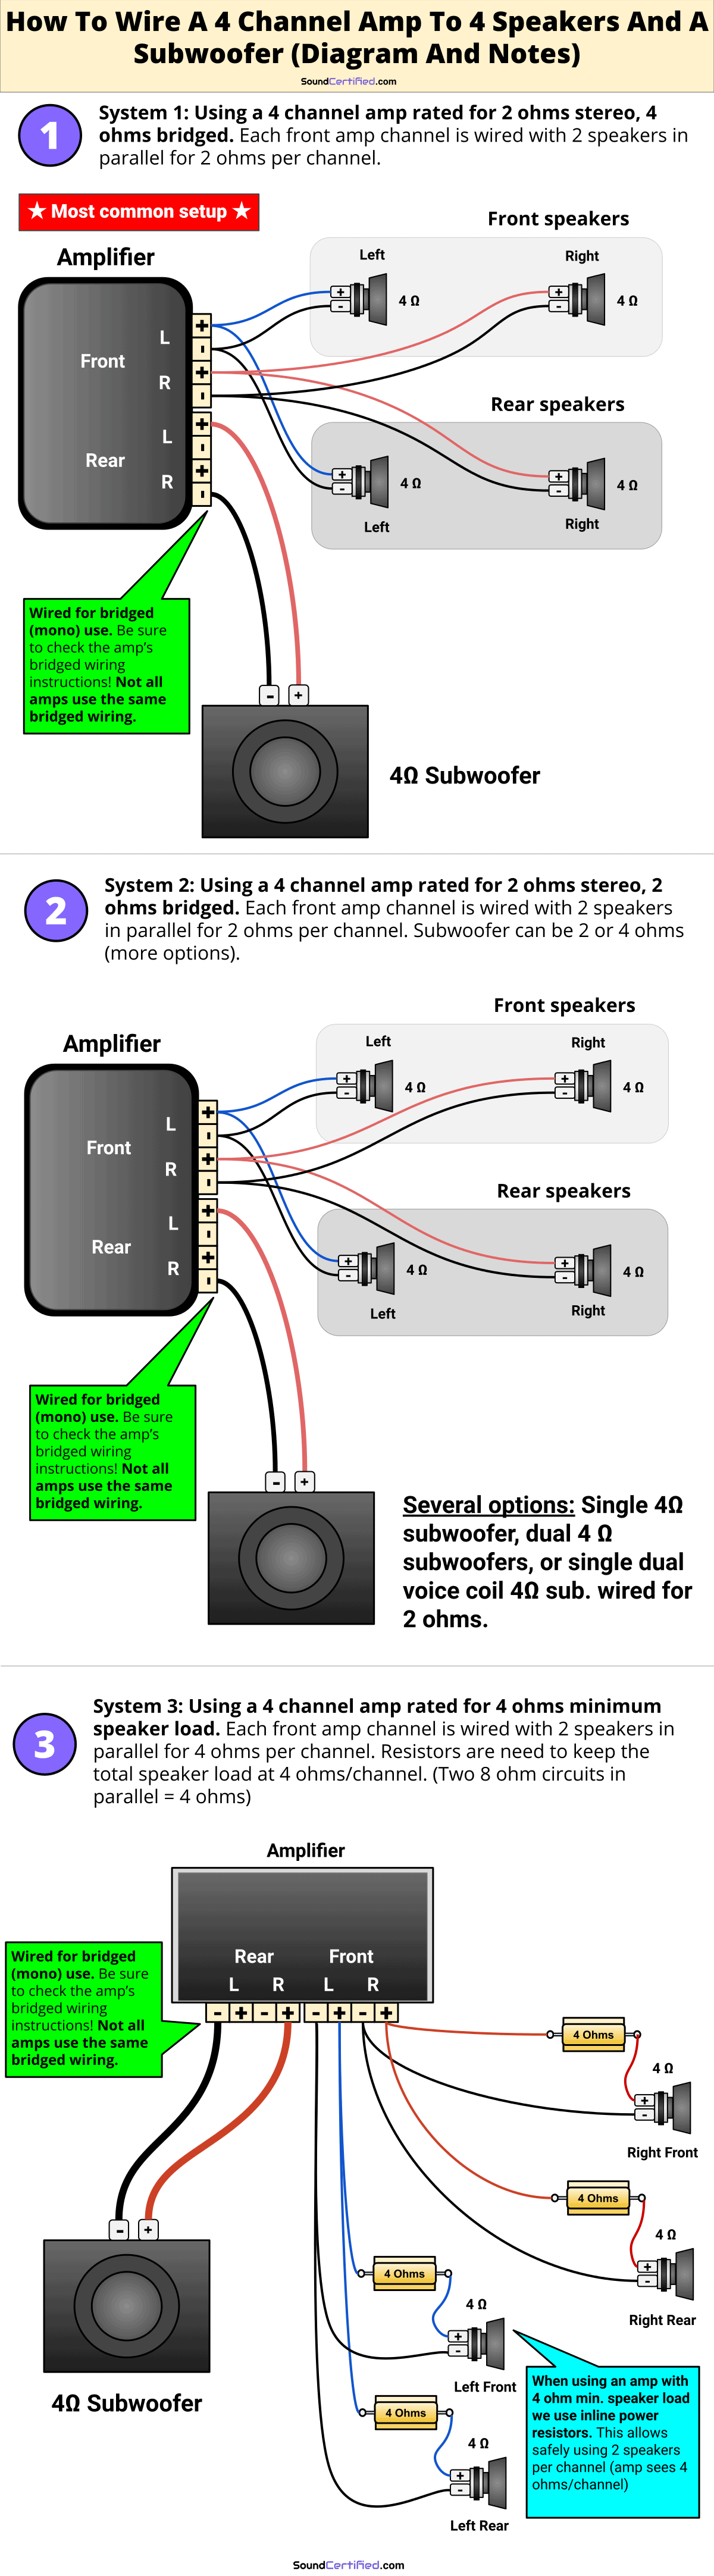 [SCHEMATICS_48ZD]  How To Wire A 4 Channel Amp To 4 Speakers And A Sub: A Detailed Guide With  Diagrams | Car Audio Wiring Diagram 1 Sub 4 Speakers |  | Sound Certified